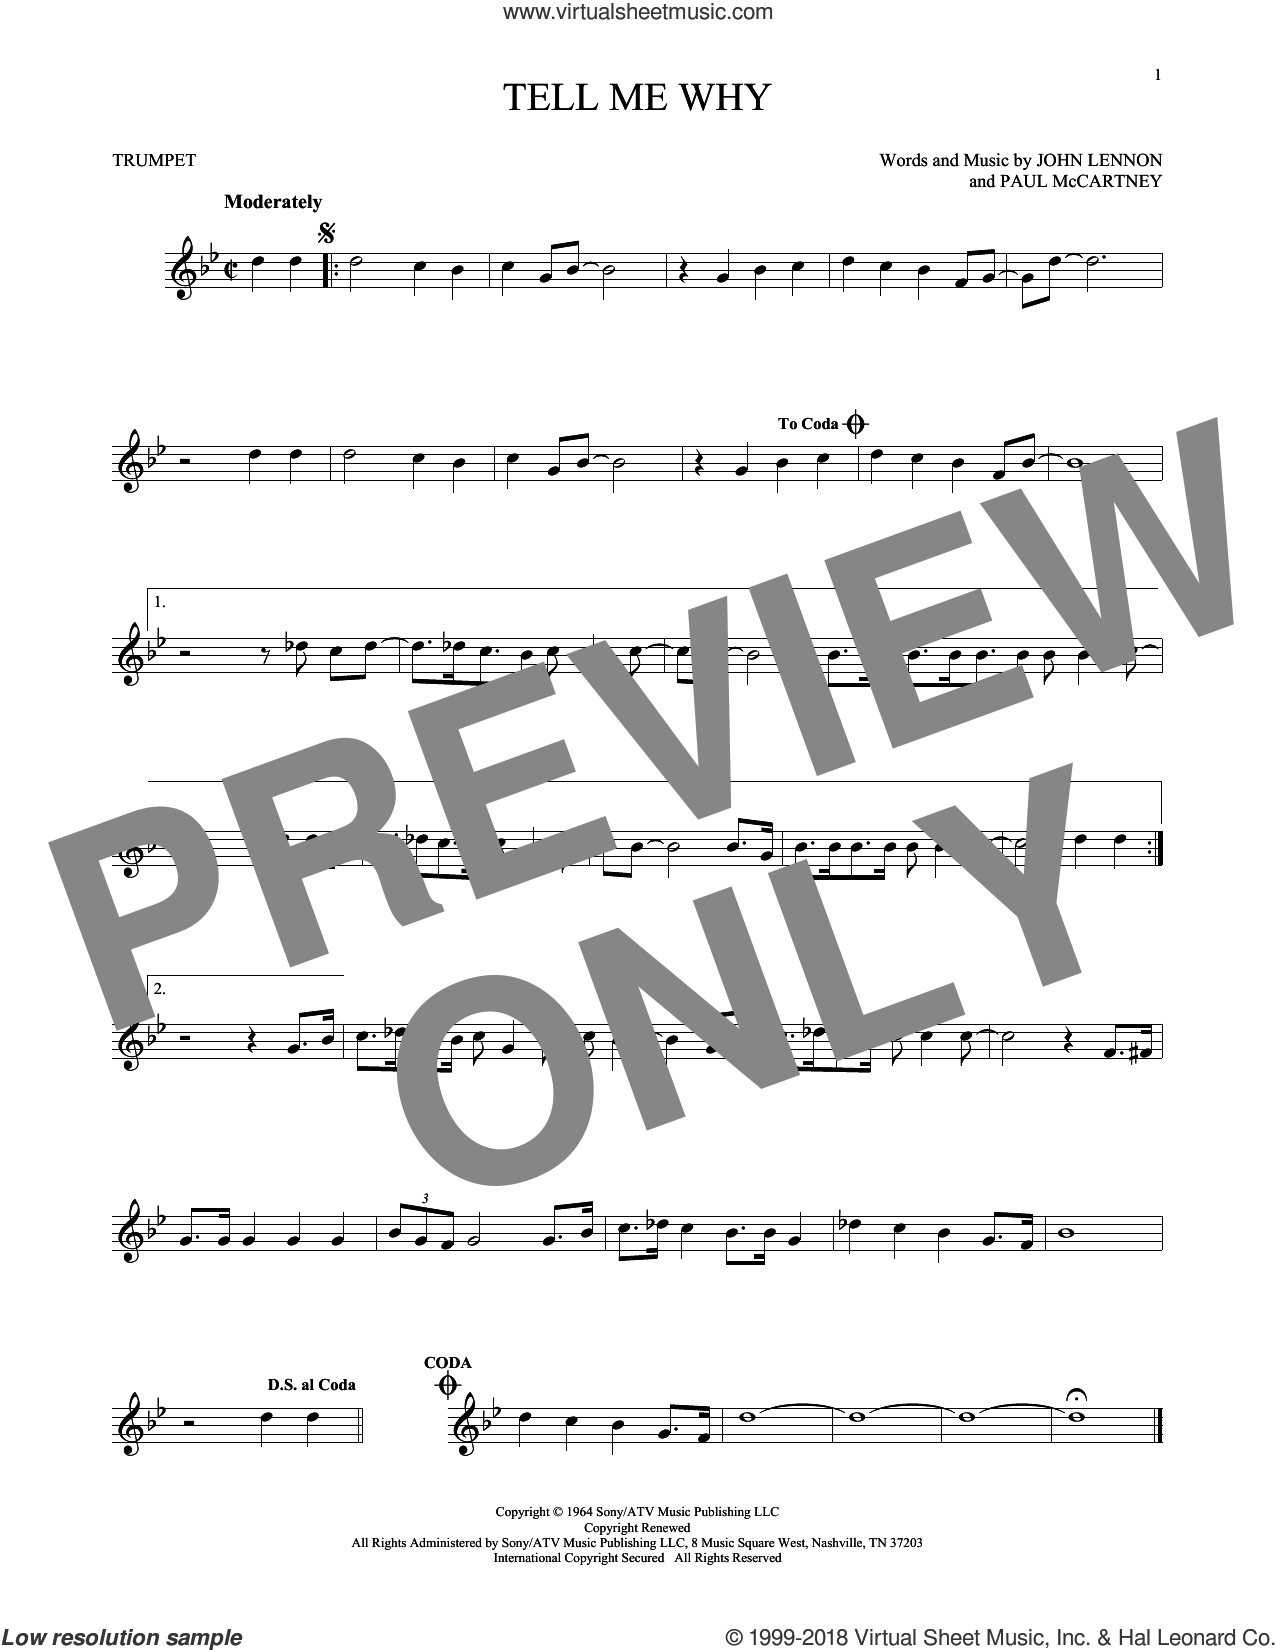 Tell Me Why sheet music for trumpet solo by The Beatles, John Lennon and Paul McCartney, intermediate skill level